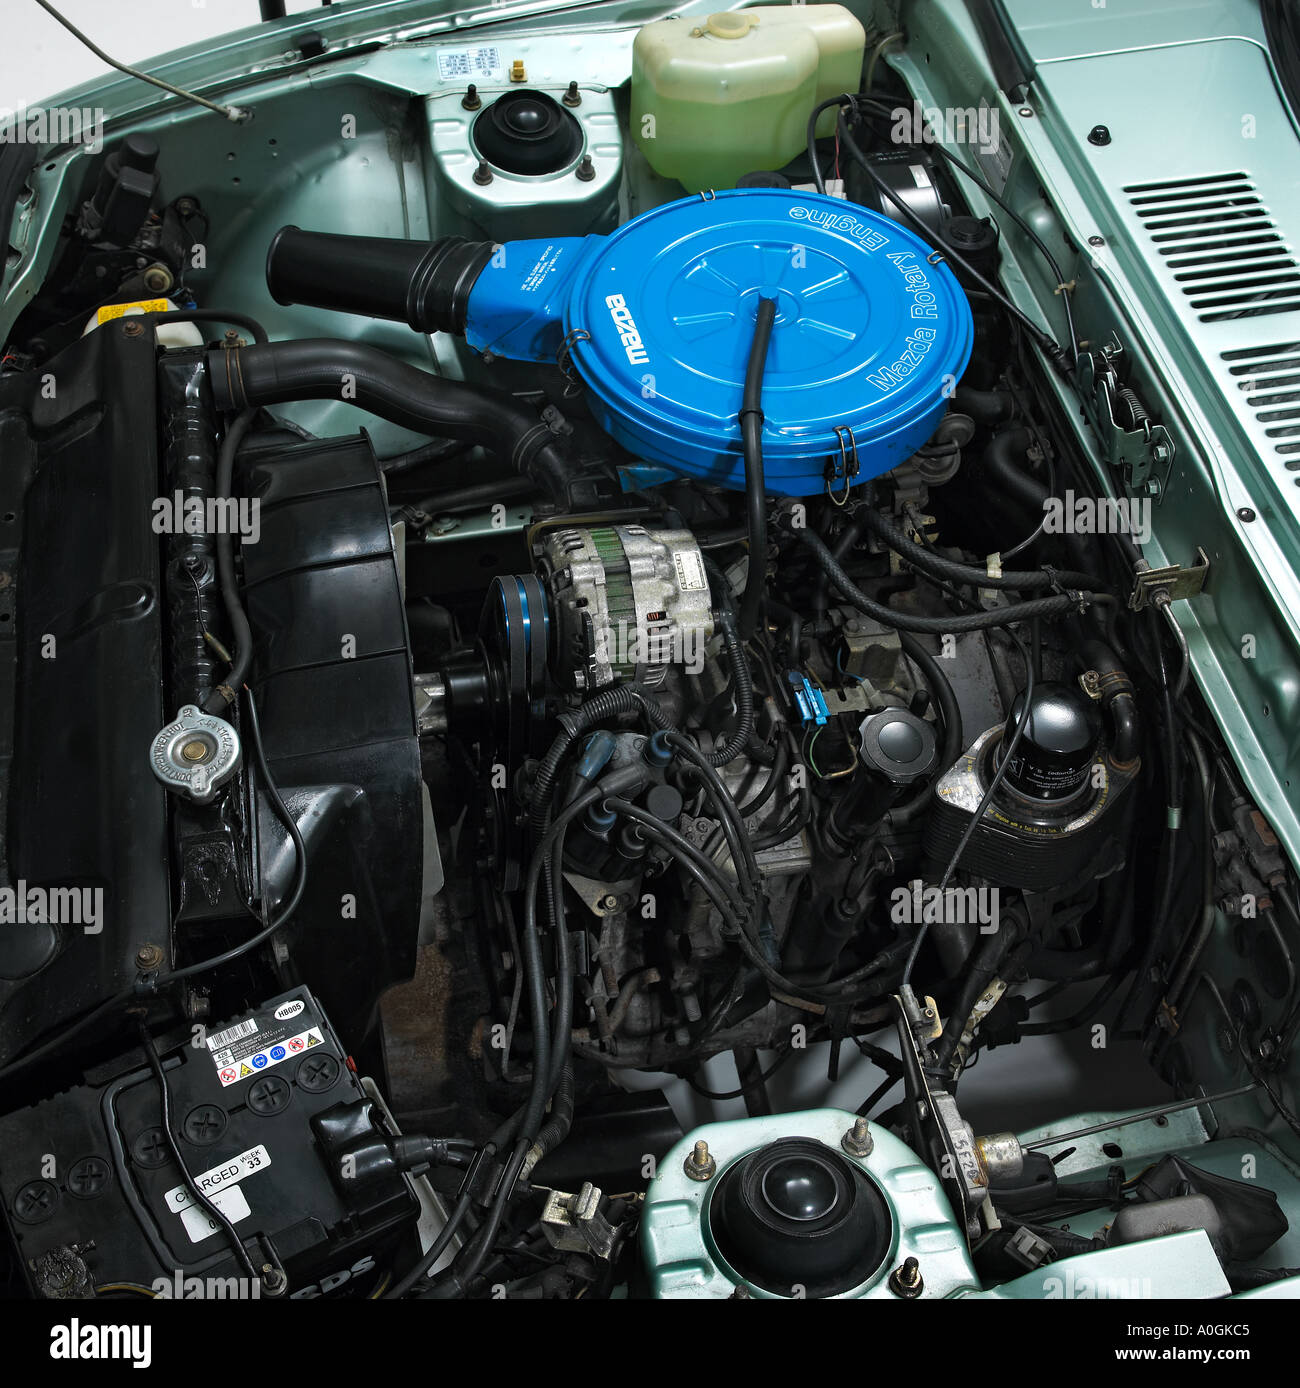 Rx7 Engine Is: Mazda Rx7 Stock Photos & Mazda Rx7 Stock Images